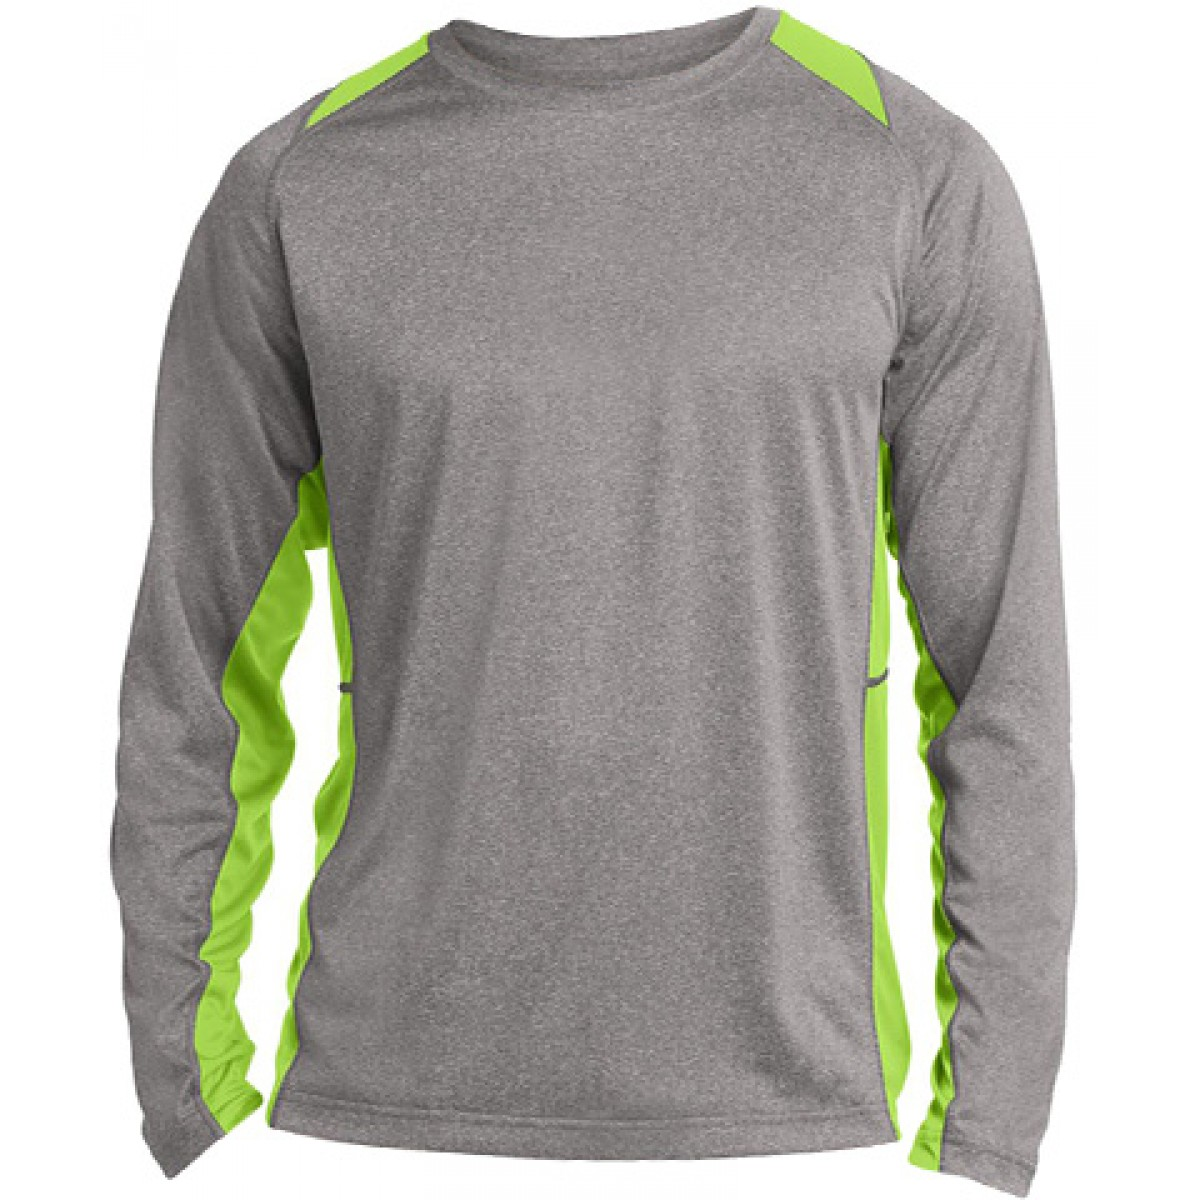 Long Sleeve Heather Colorblock Contender (Colors: Grey/Black, Grey/Green, Grey/Red)